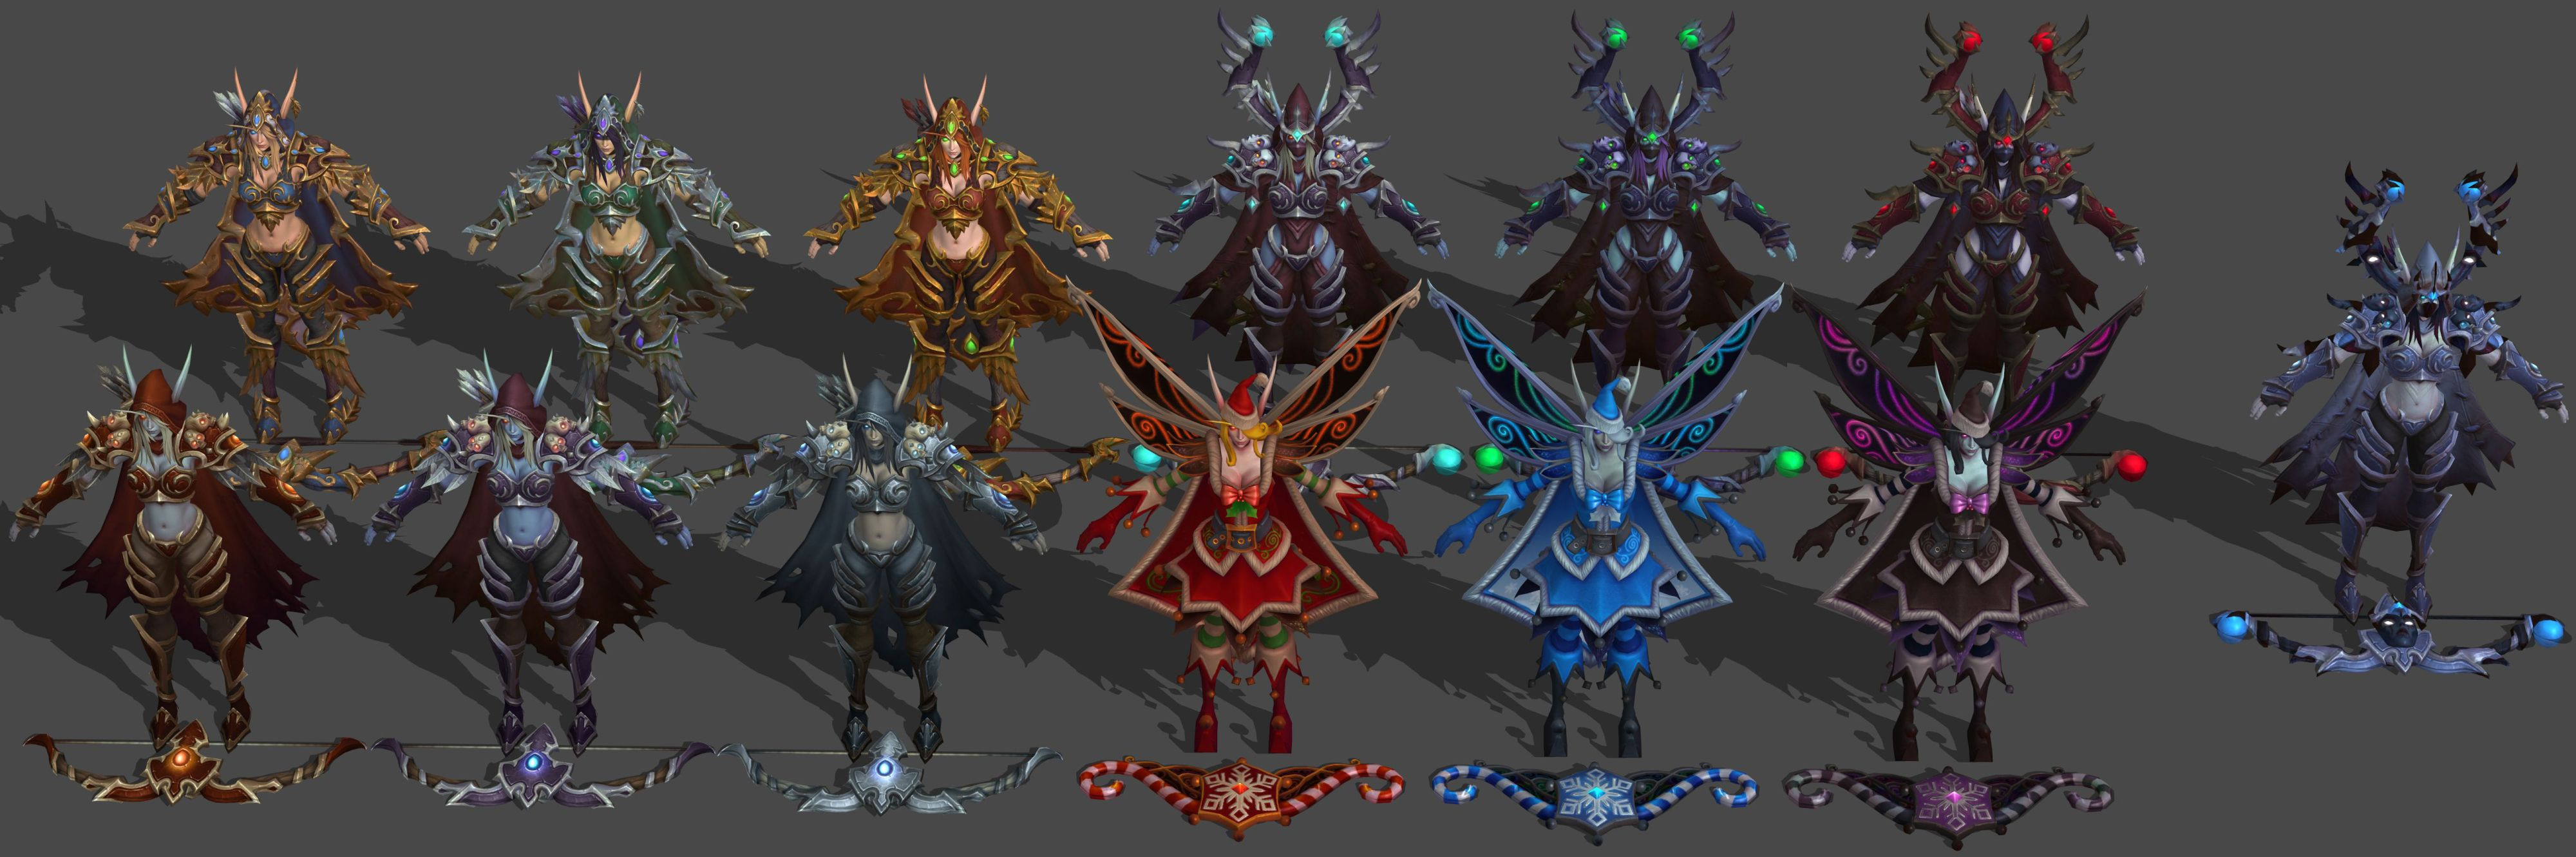 Heroes Of The Storm Sylvanas Pack Xps Only By Lezisell On Deviantart Sylvanas (ranged assassin) patch note history for heroes of the storm (hots). heroes of the storm sylvanas pack xps